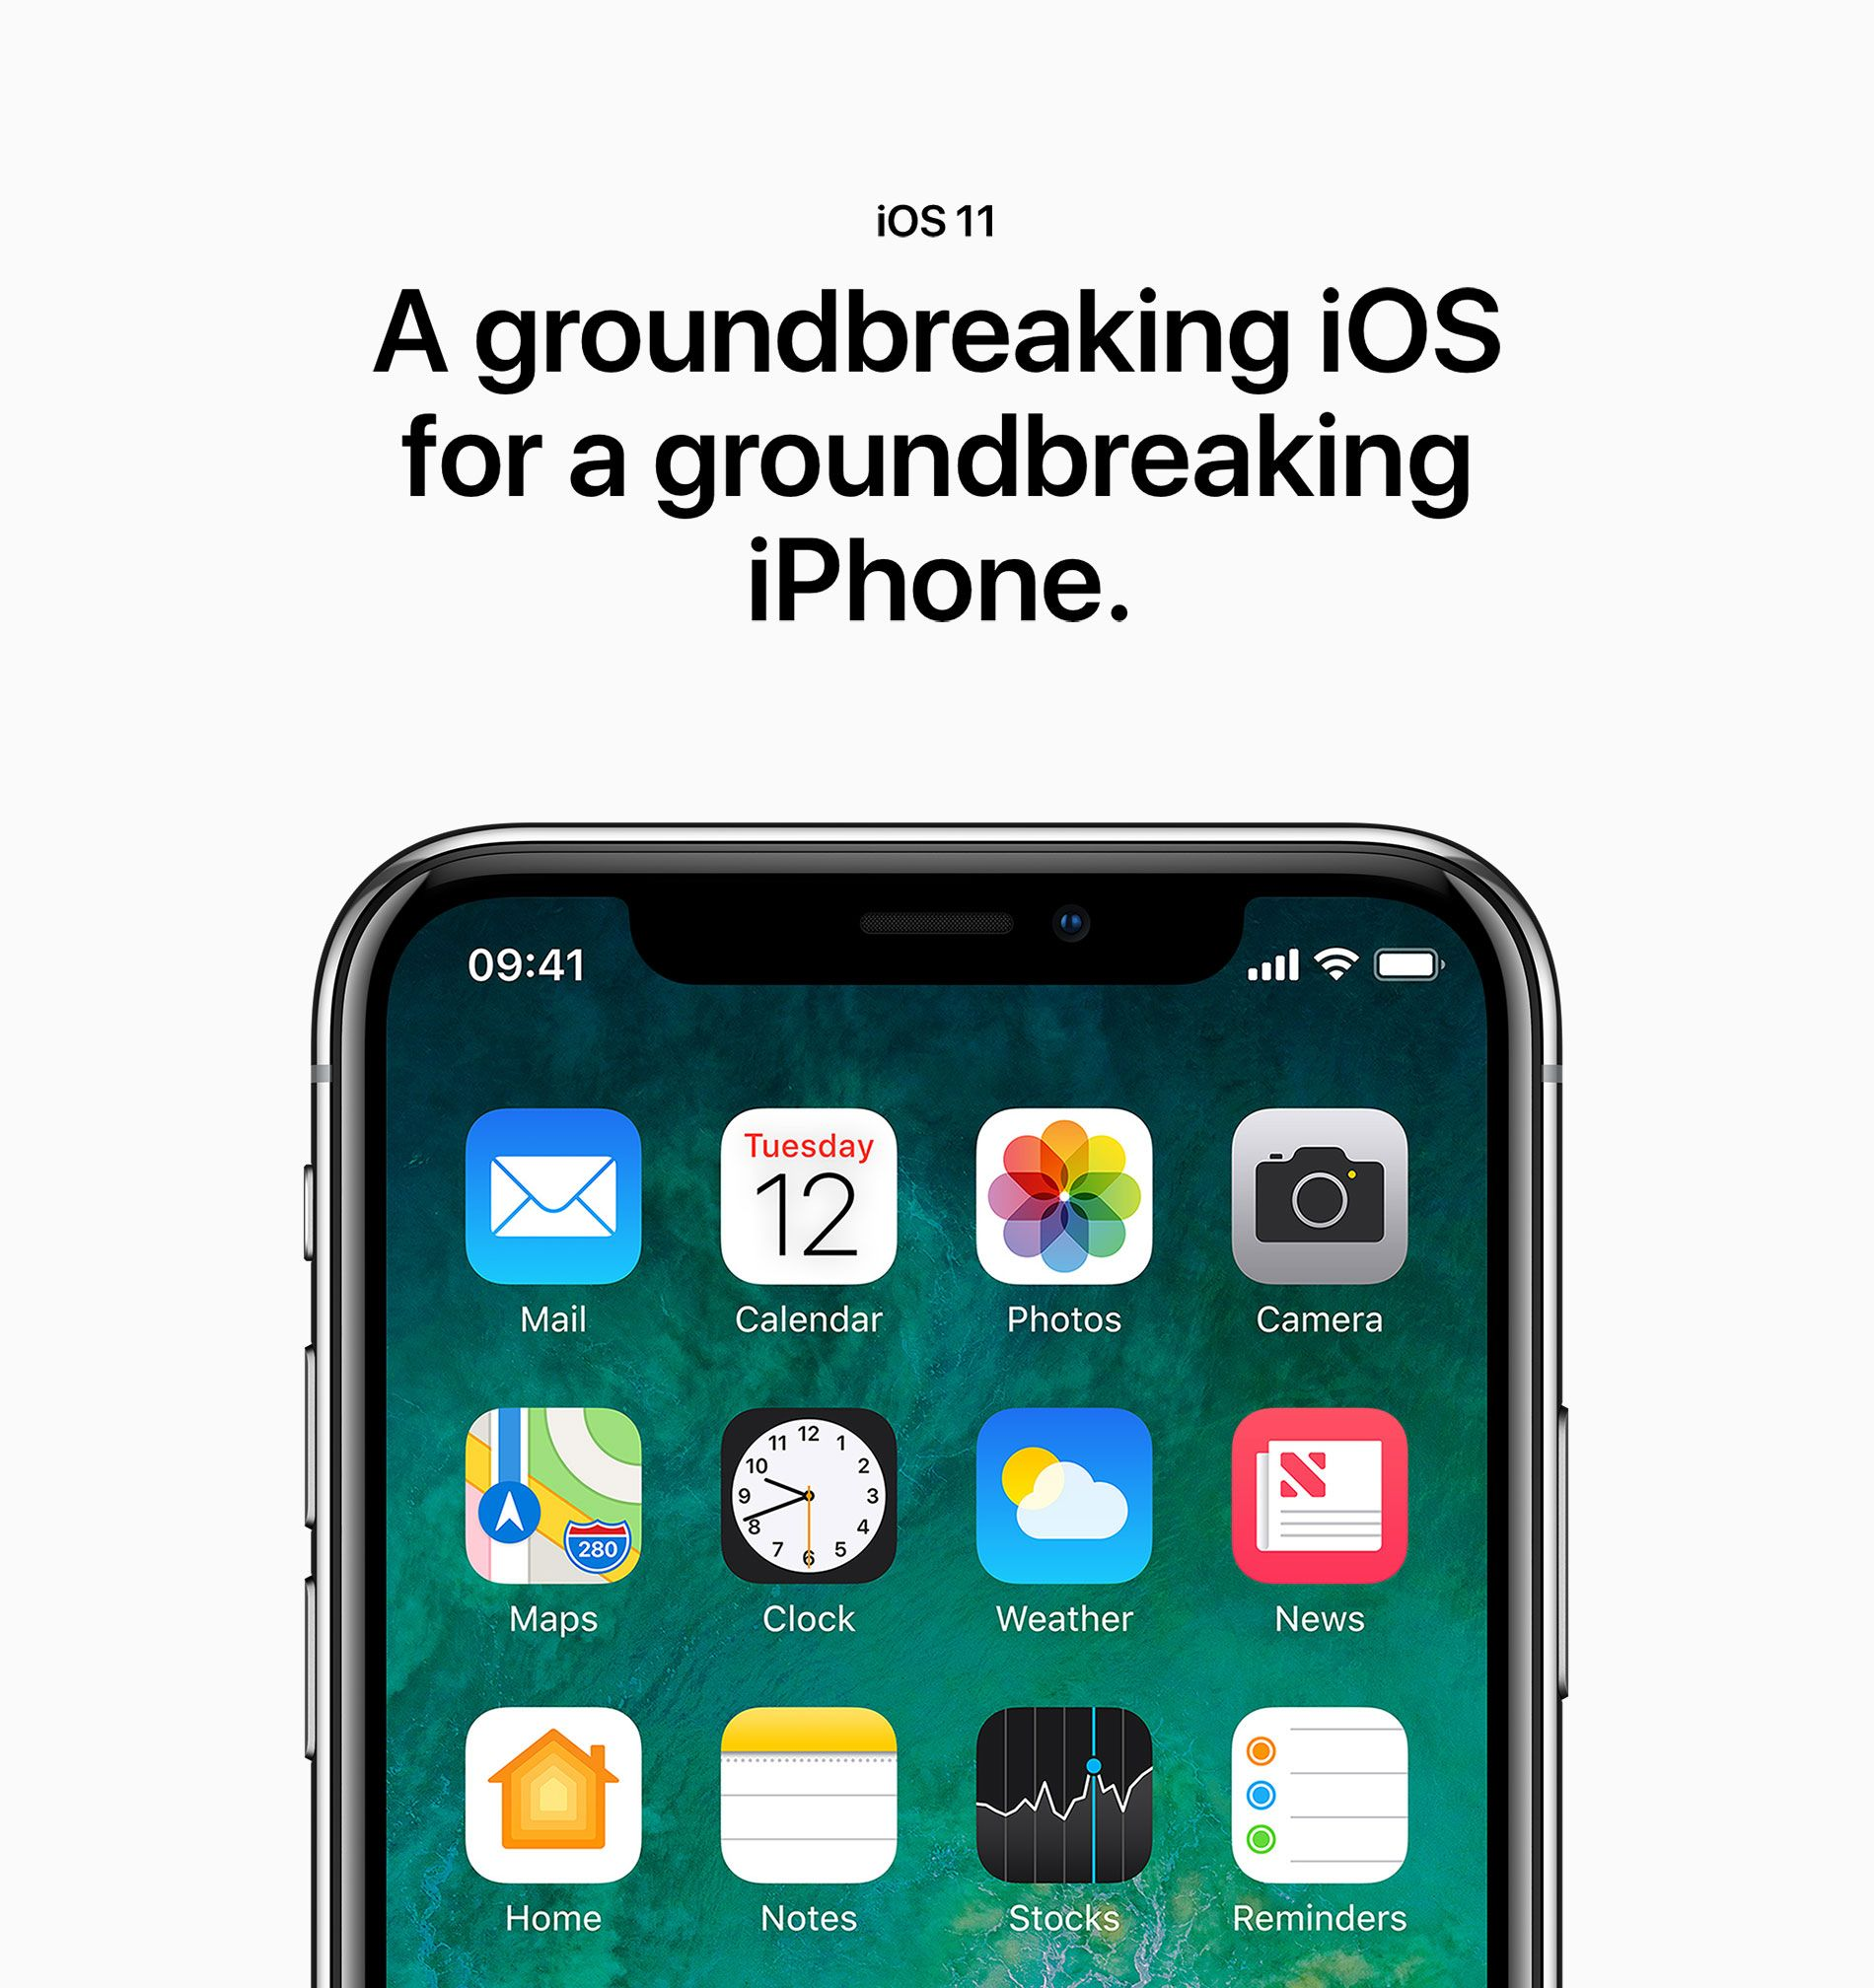 iOS 11 - A groundbreaking iOS for a groundbreaking iPhone.